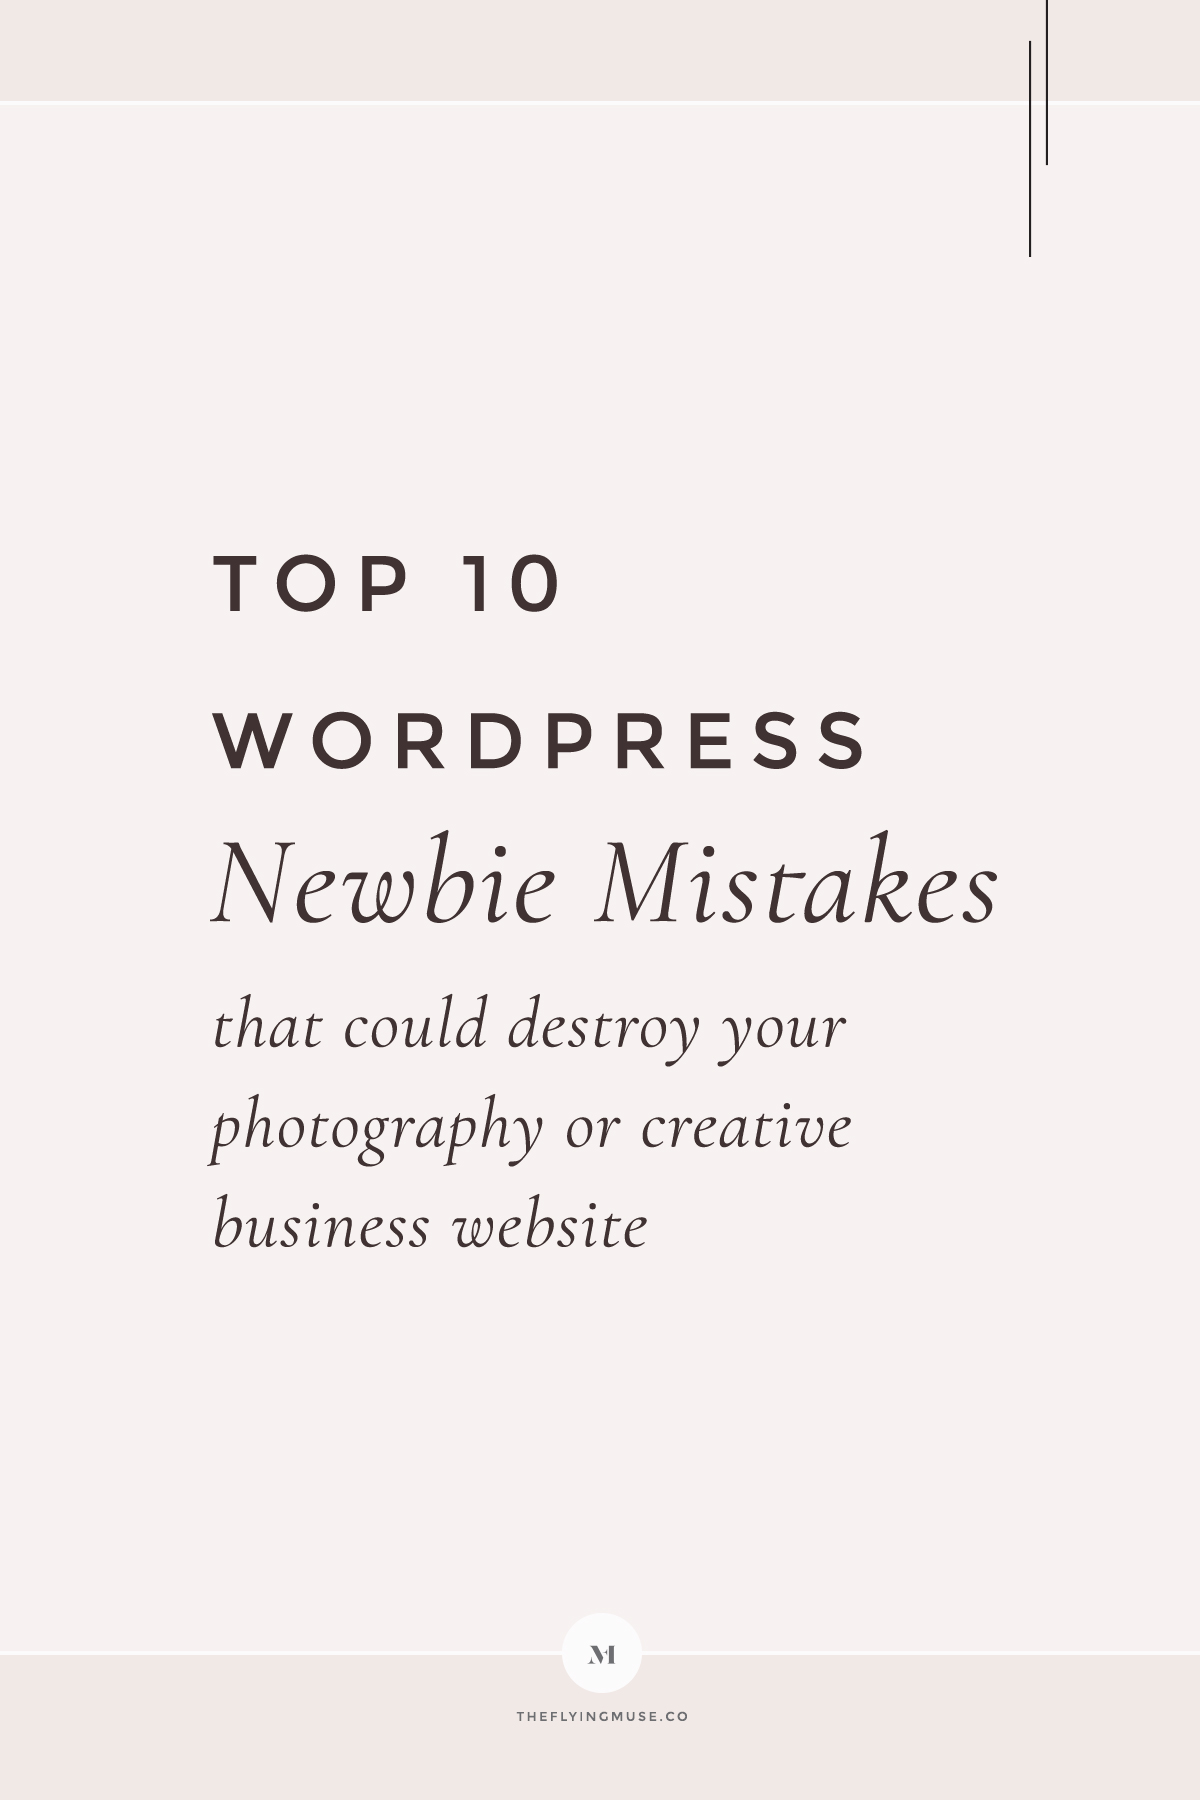 Top WordPress Newbie Mistakes could destroy your photography or creative website